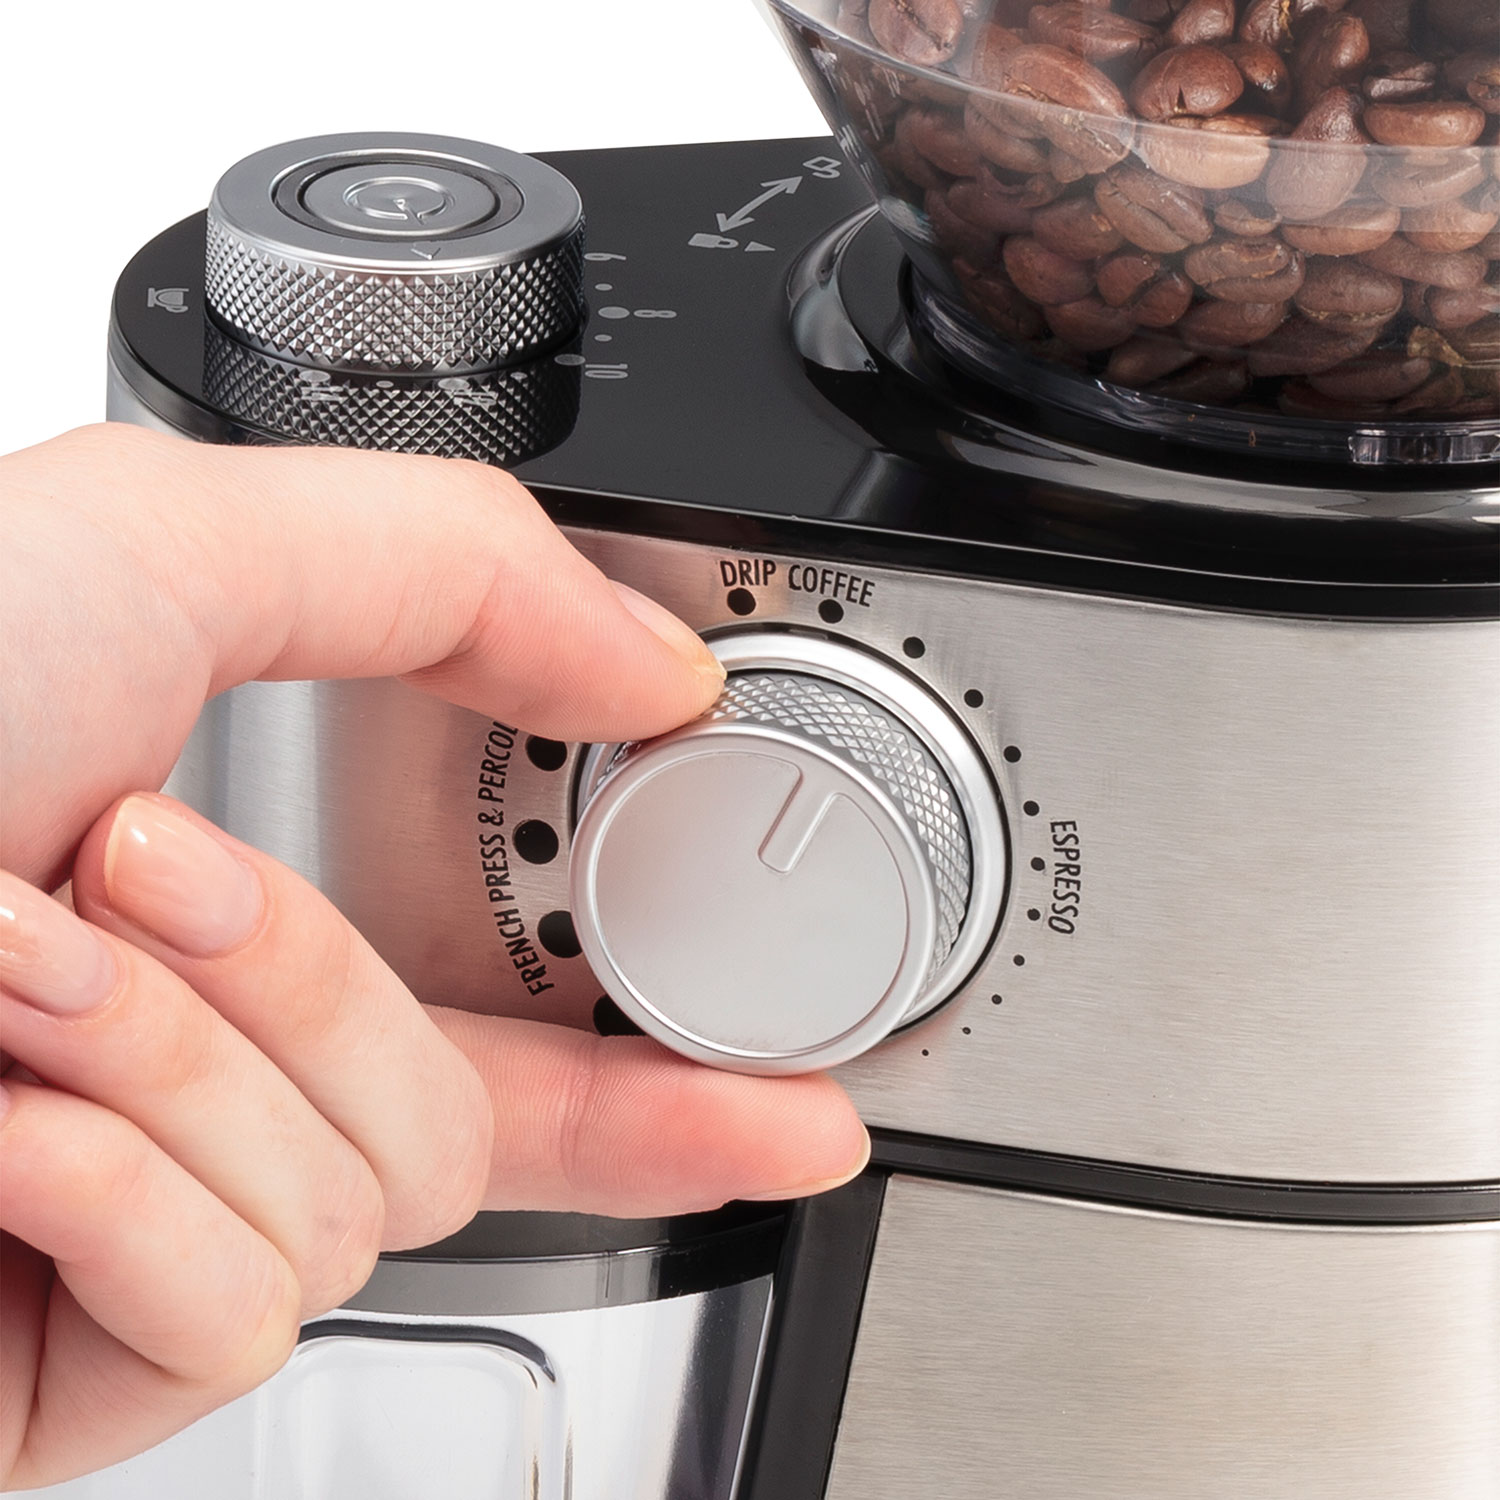 The Fresh Grind Coffee Maker 80333R features a removable grinding chamber for easy pouring and cleaning.